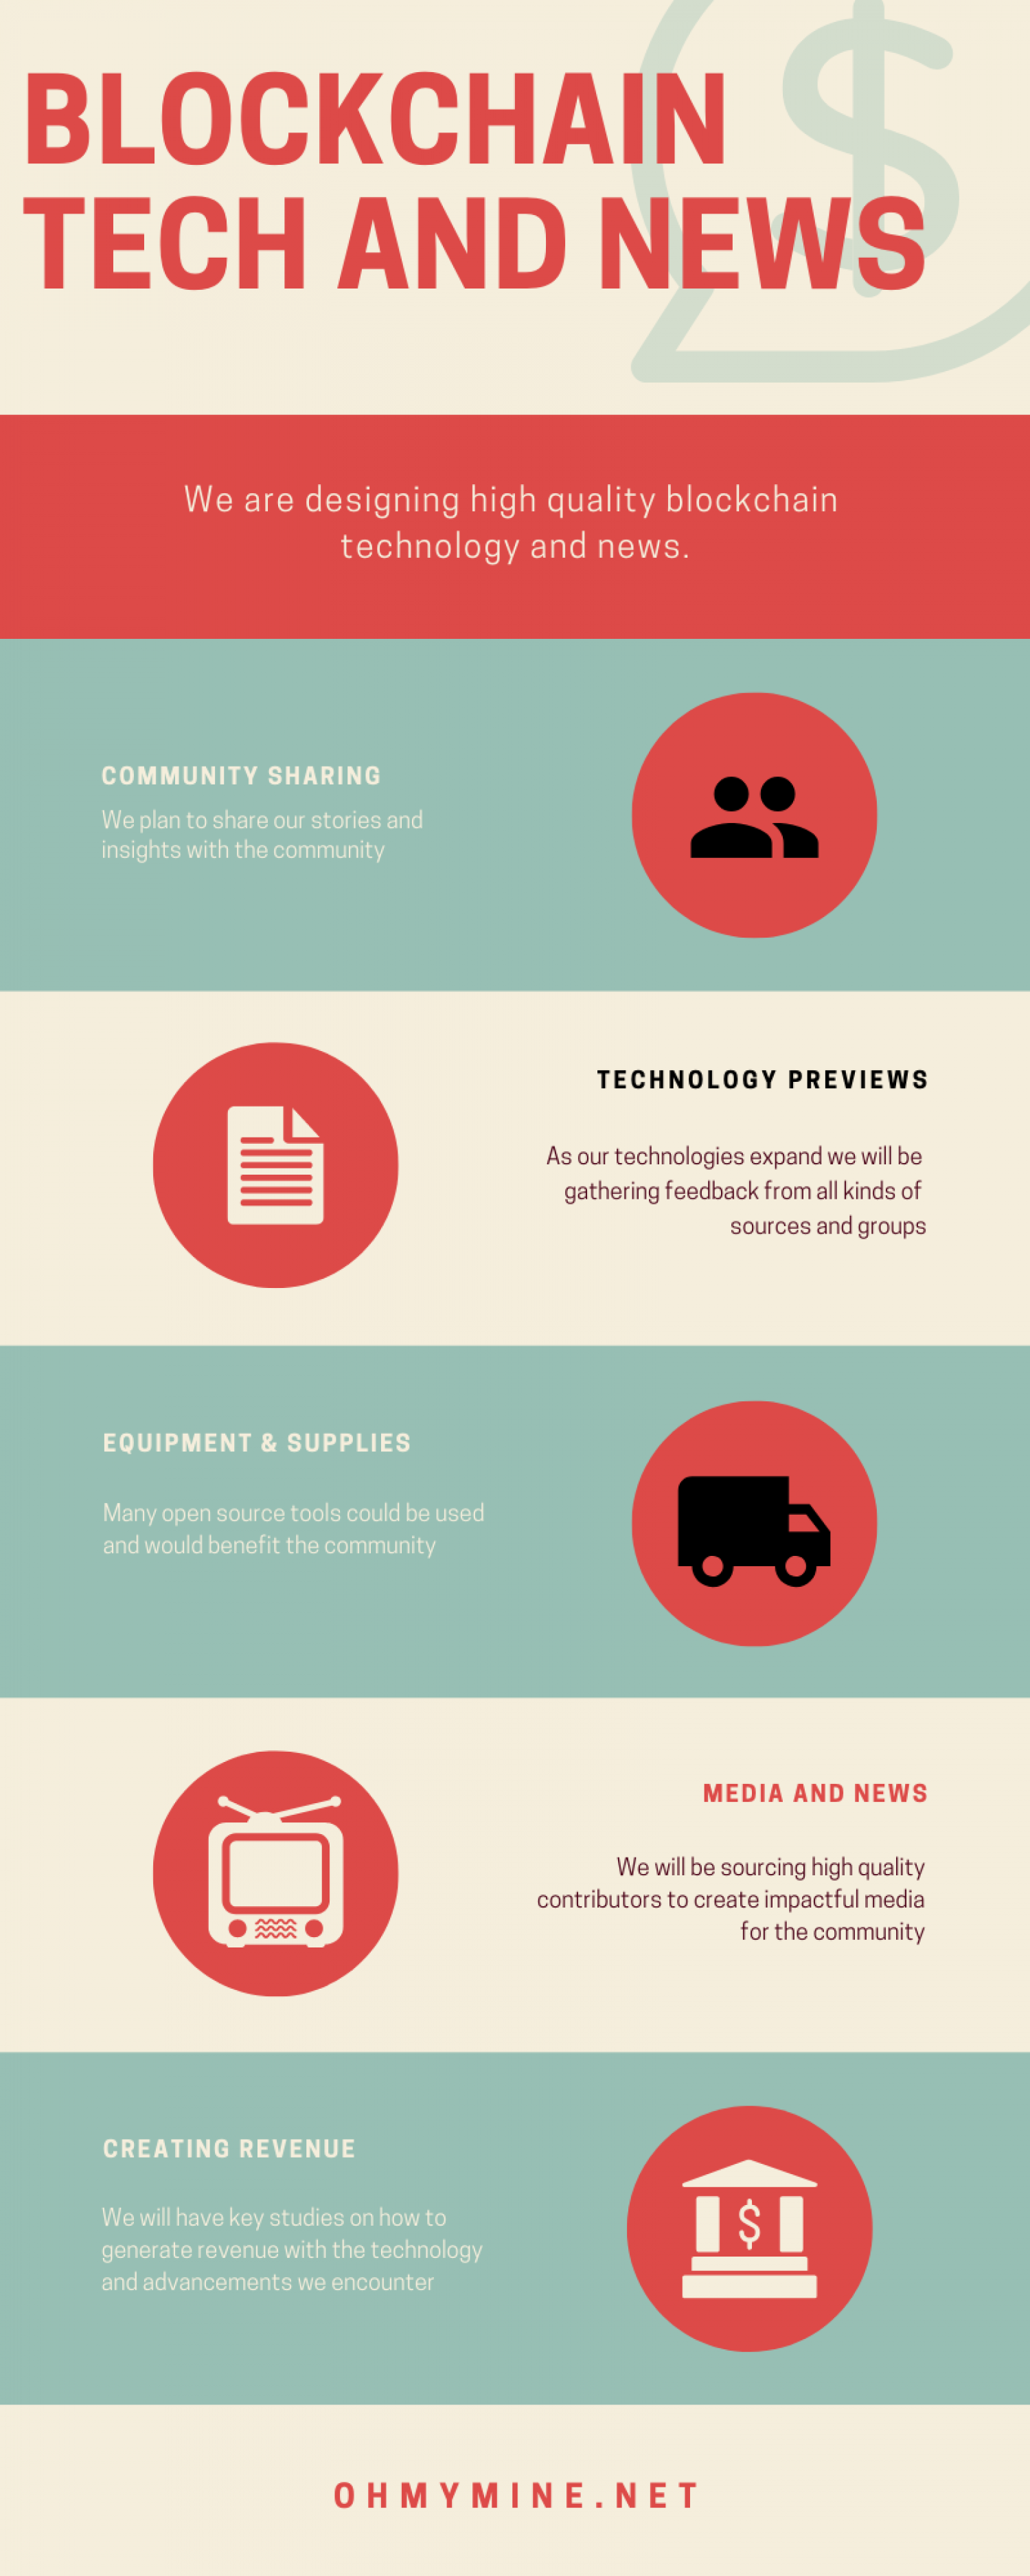 Blockchain Technology and News Infographic